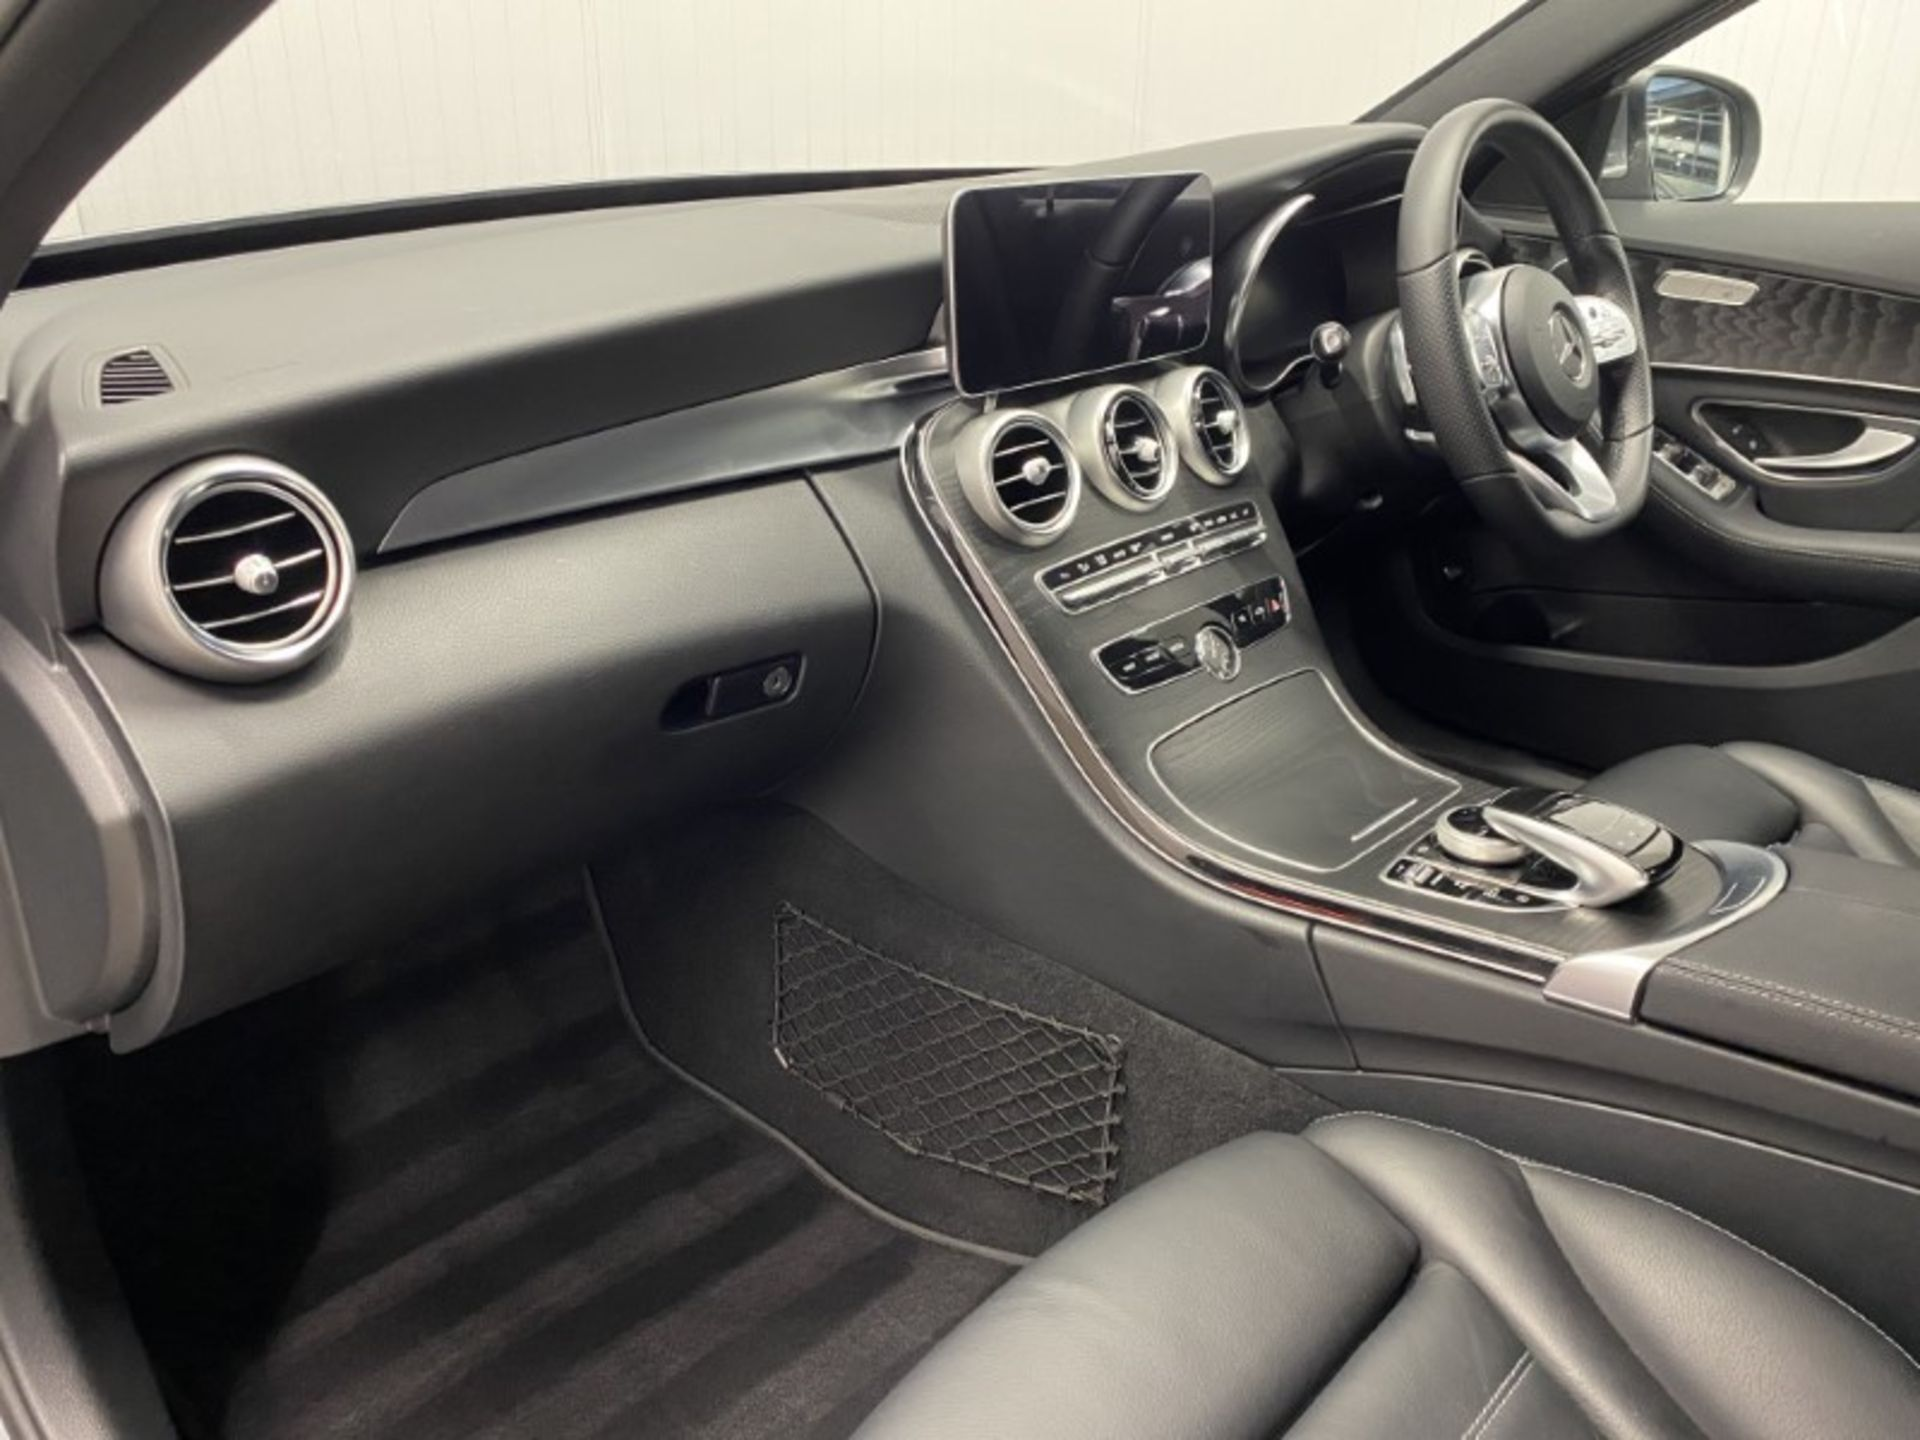 MERCEDES-BENZ C220d *AMG LINE - PREMIUM* SALOON (2021 MODEL) '9-G TRONIC' *LEATHER & NAV* (1 OWNER) - Image 5 of 7